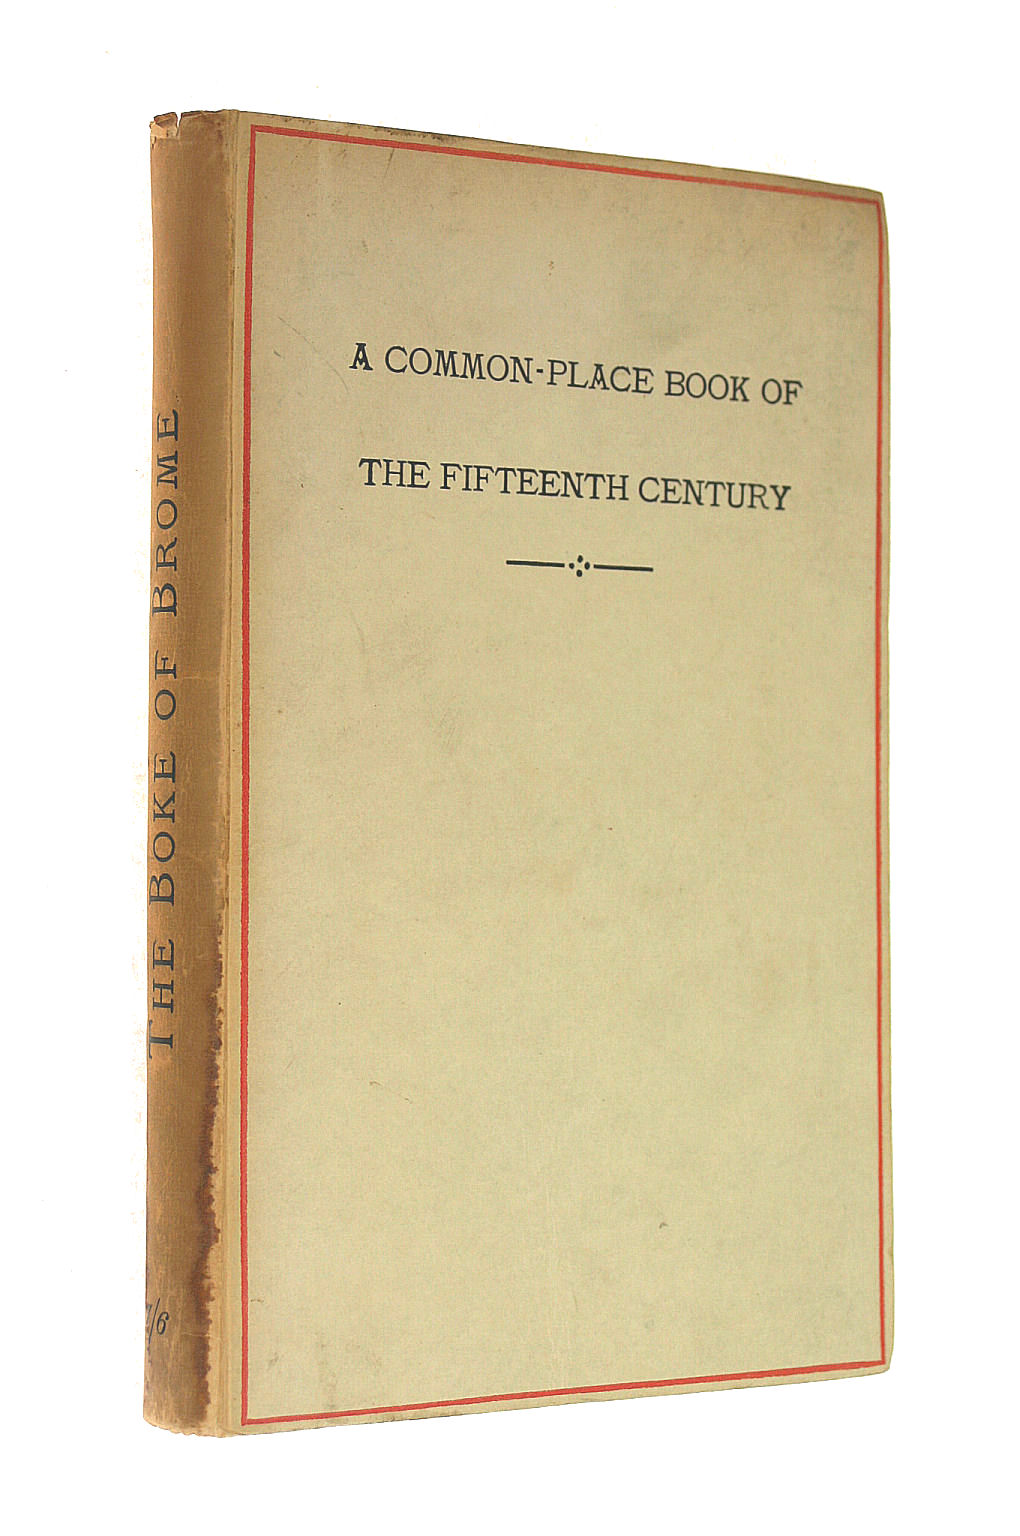 Image for A Common-Place Book of the Fifteenth Century: a Religious Play and Poetry, Legal Forms, and Local Accounts